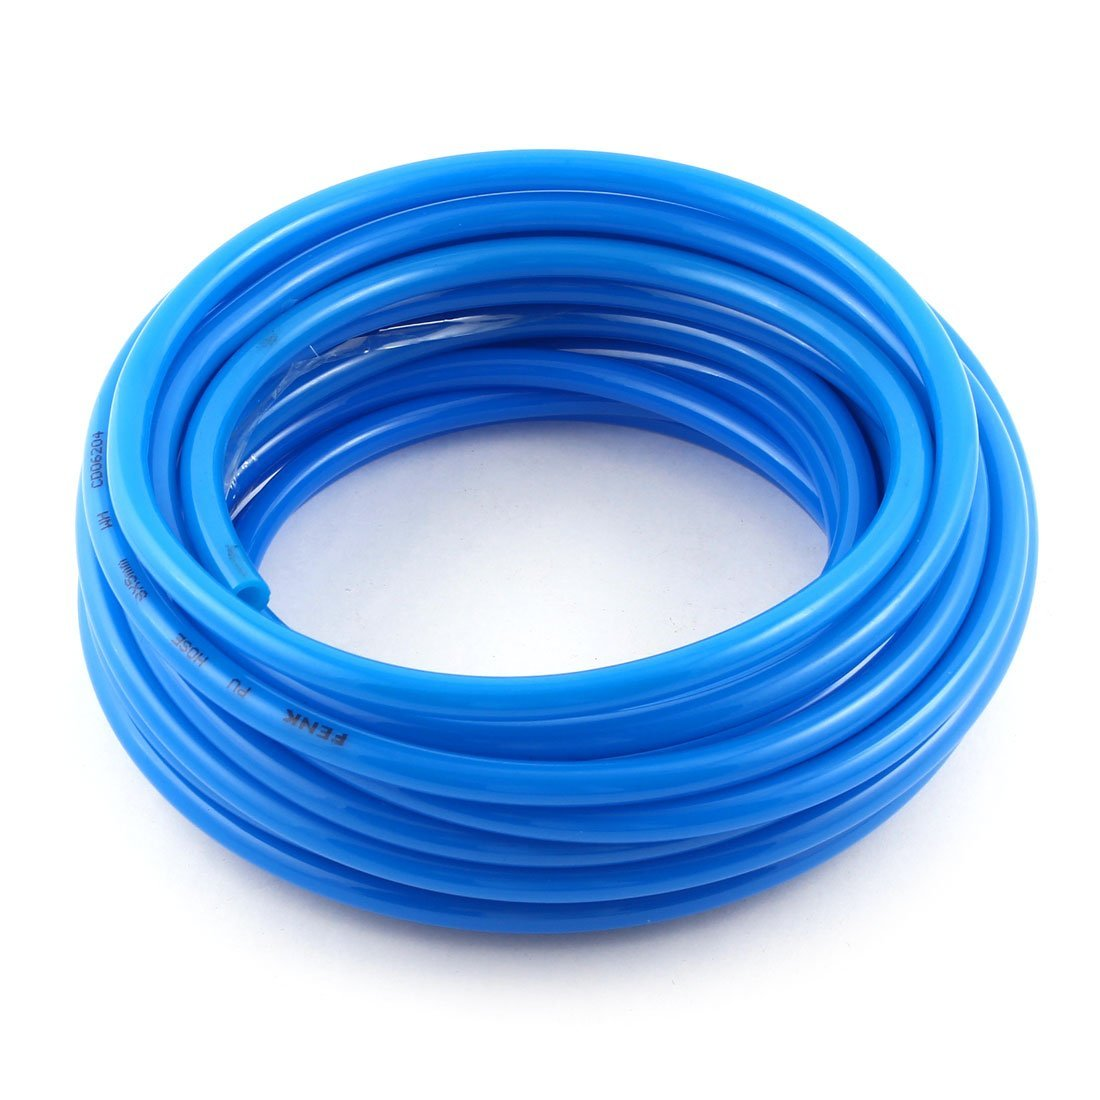 KSOL 8mm(OD) x 5mm(ID) PU Air Tubing Pipe Hose 10 Meter Blue 10M 25meters 10mm od pu air tubing pipe hose